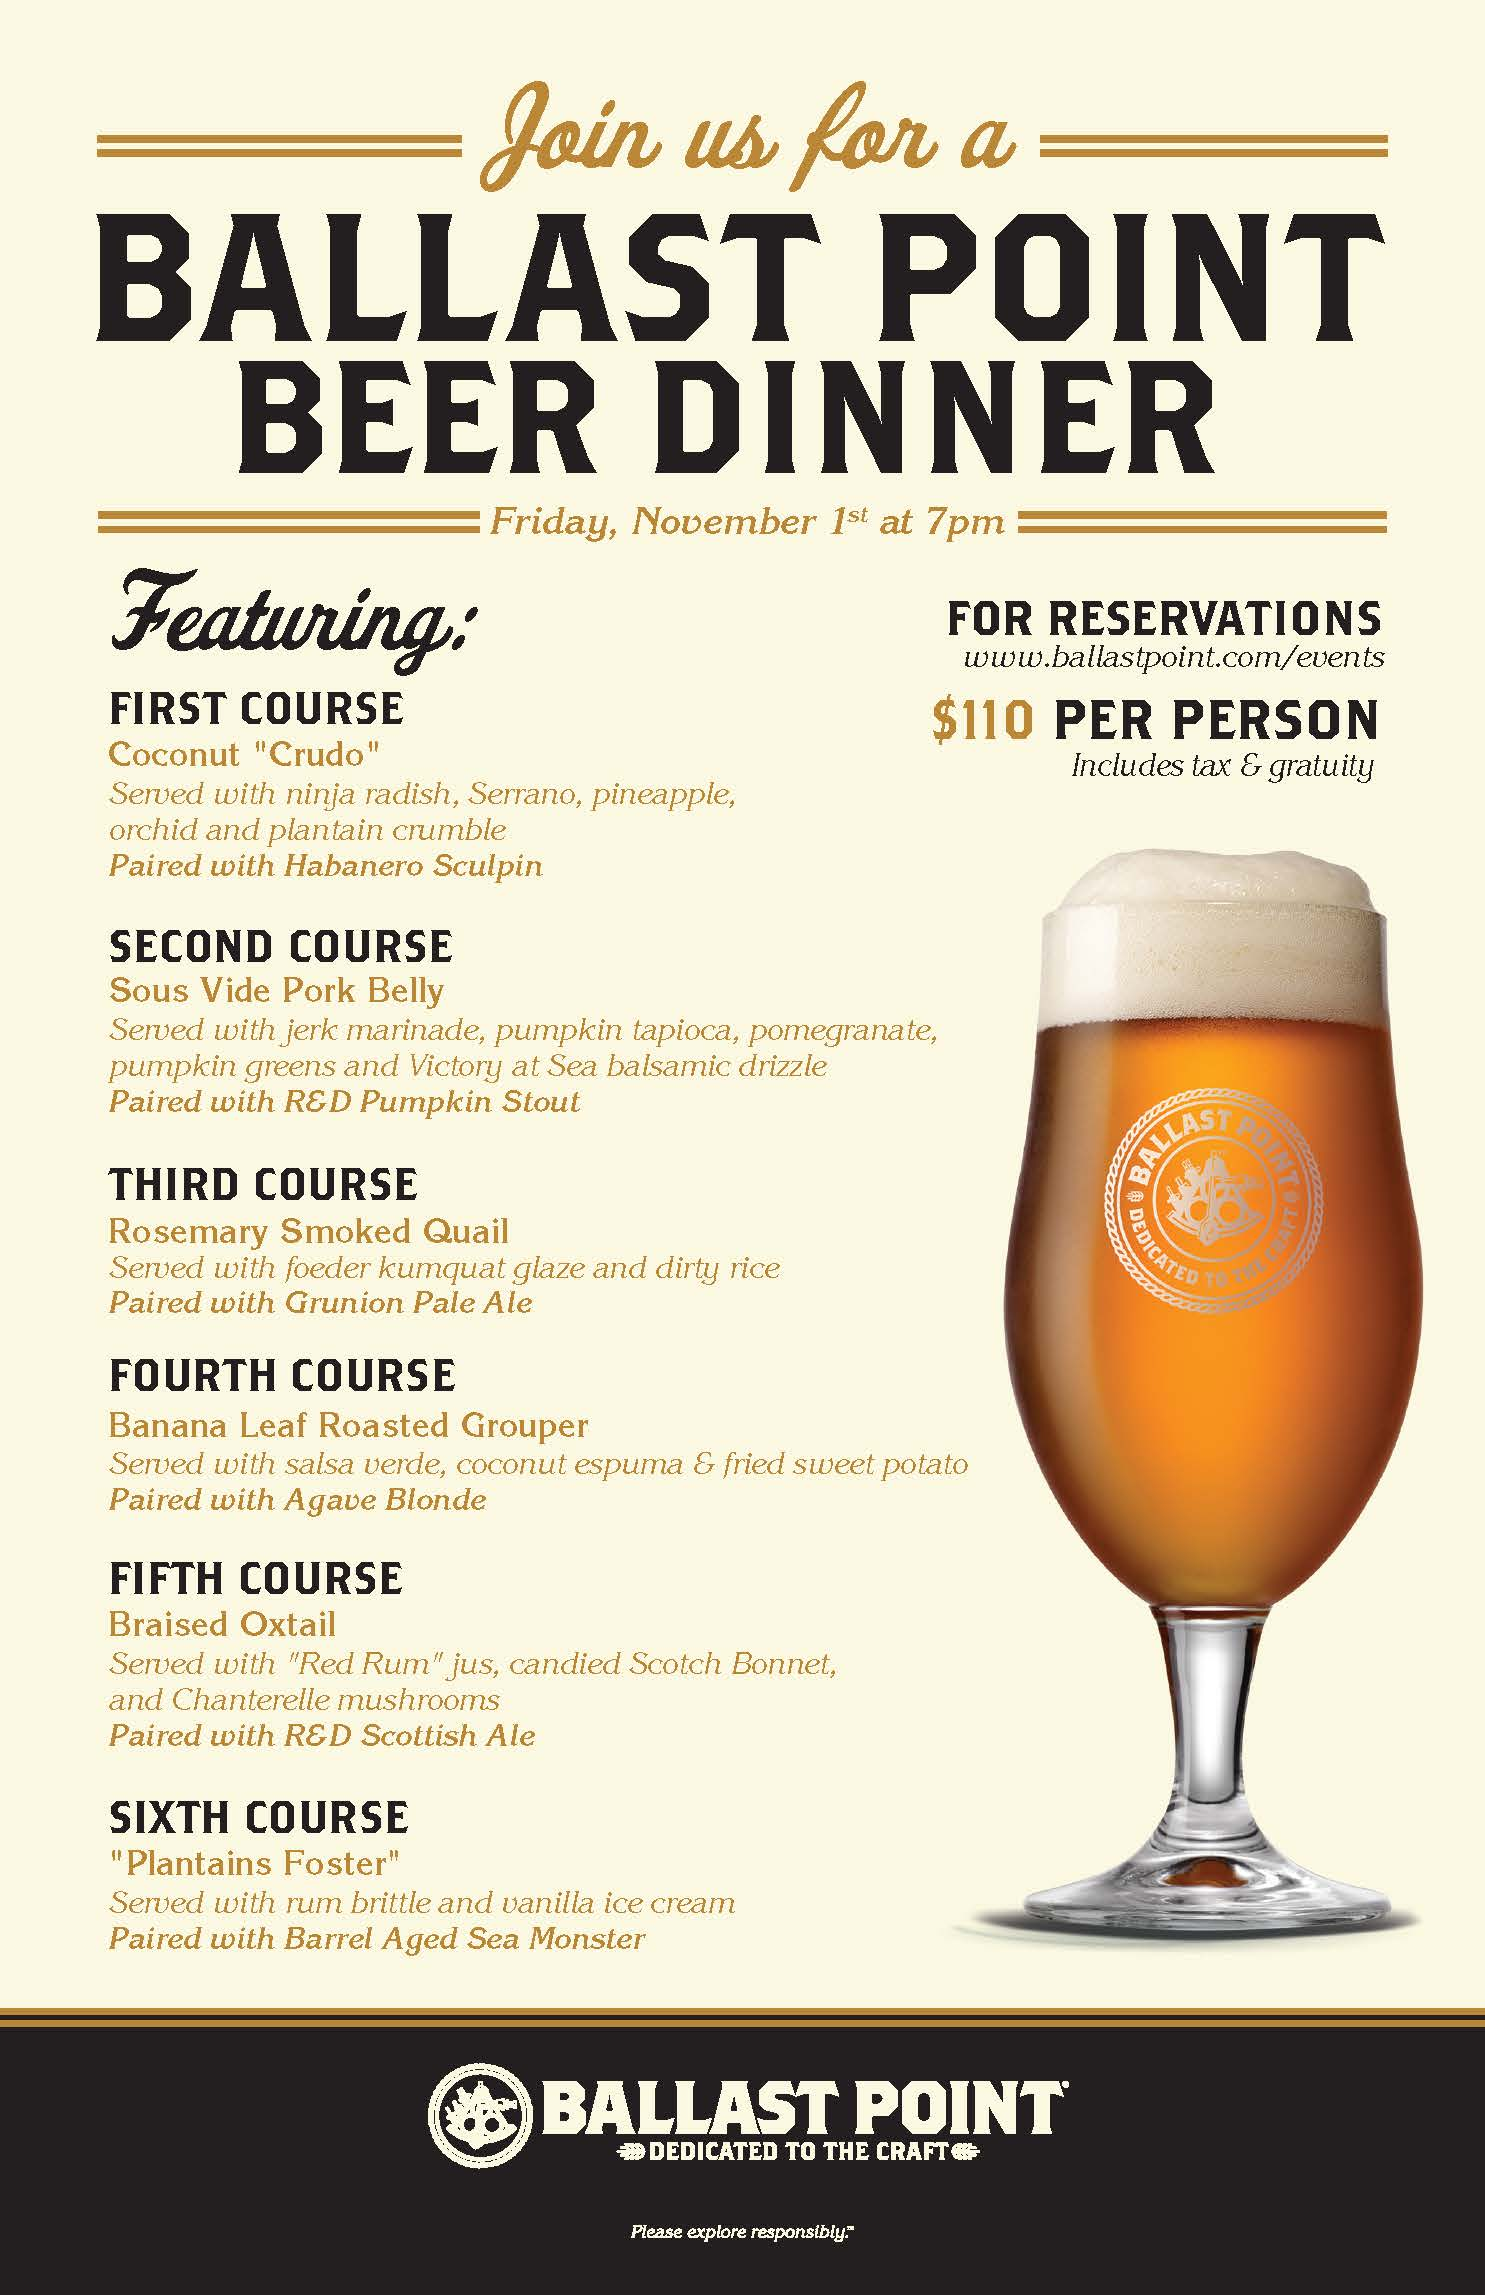 Ballast Point Beer Dinner - Downtown Disney LARGE